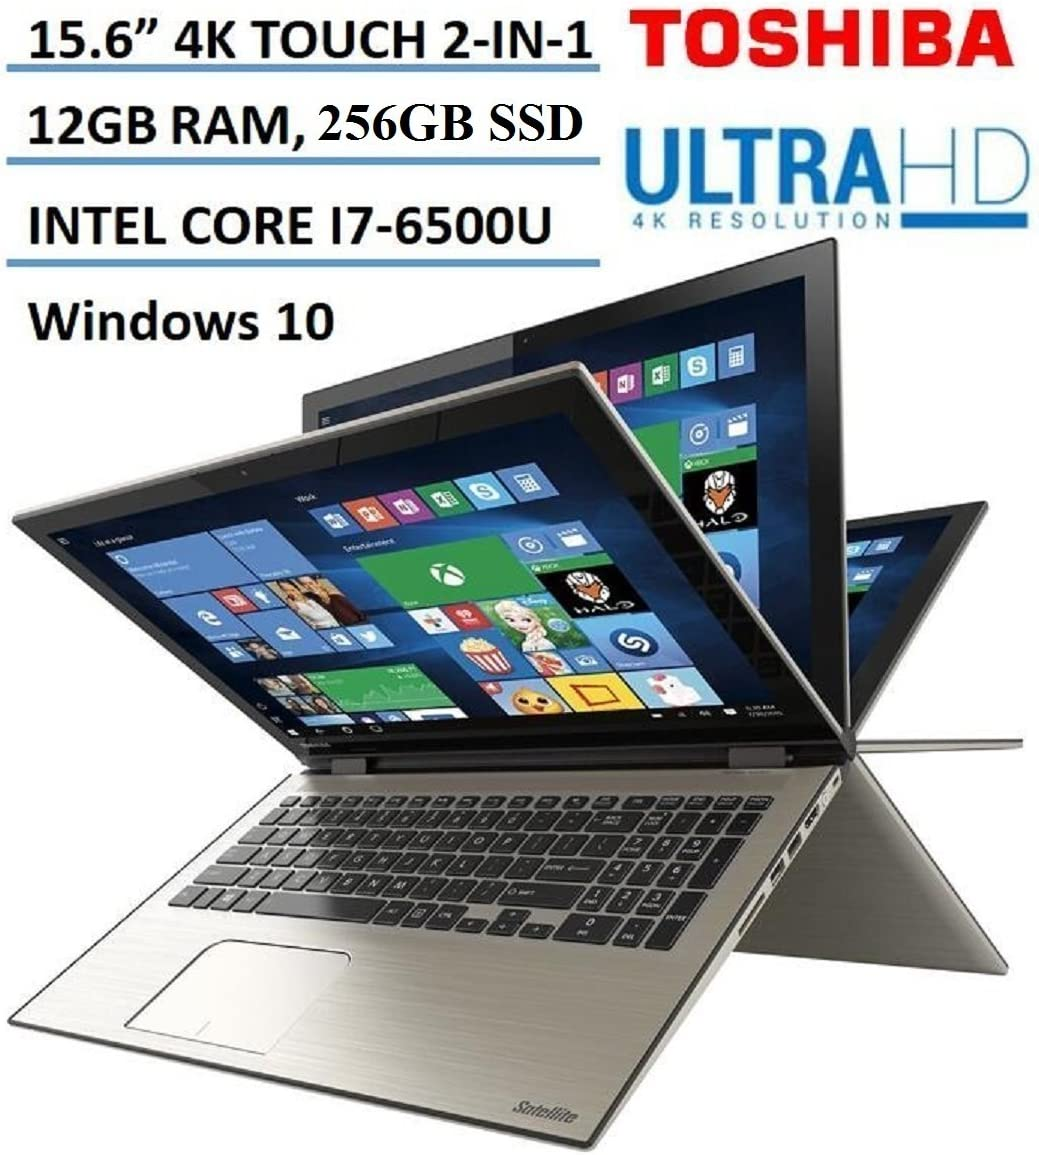 "Toshiba - Satellite Radius 2-in-1 15.6"" 4K Ultra HD Touch-Screen Laptop - Intel Core i7 - 12GB Memory - 256GB SSD - Carbon Gray"